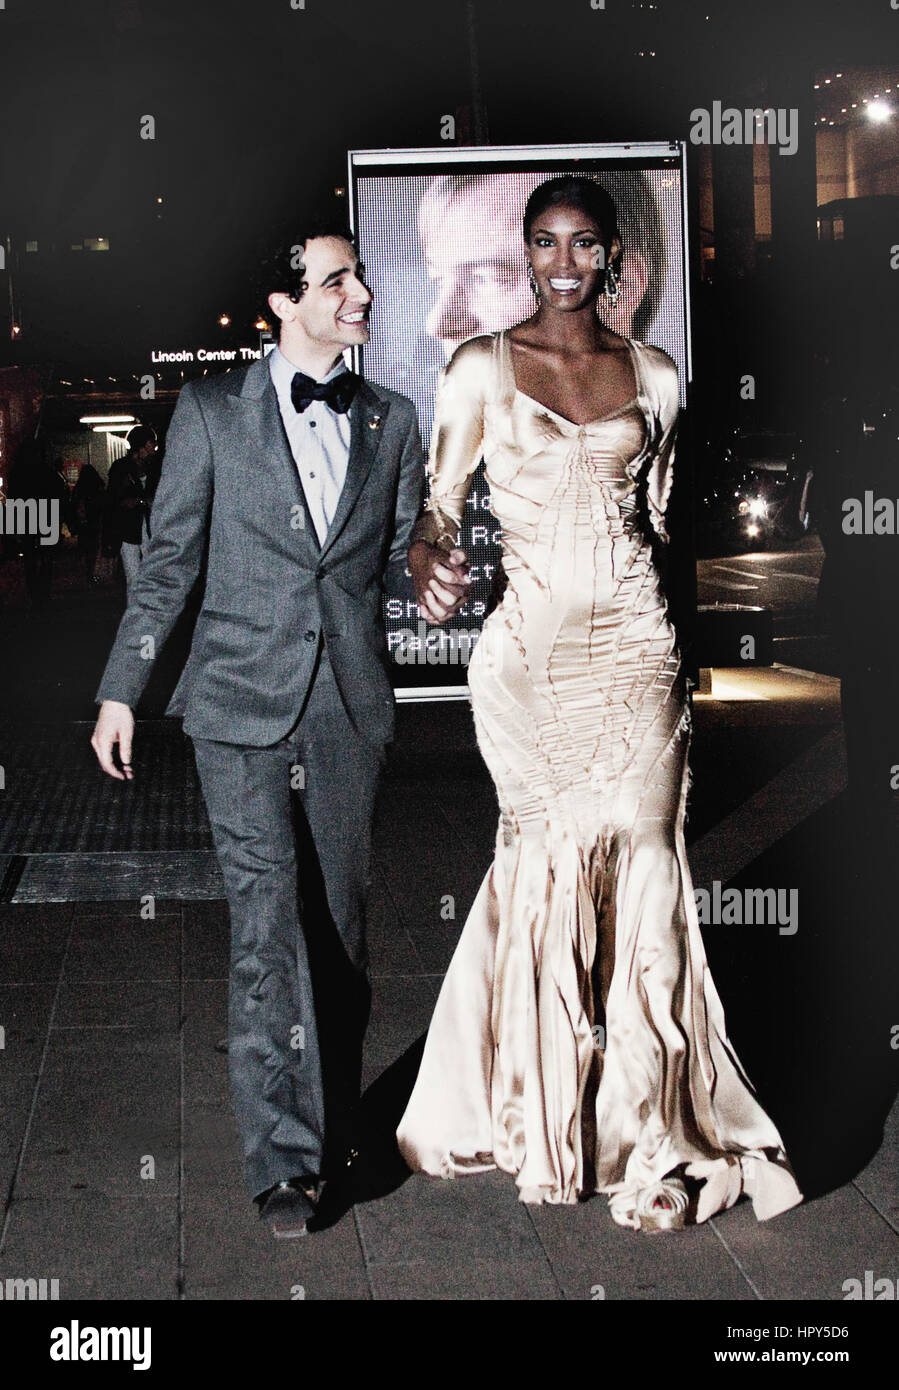 Zac Posen and Sessilee Lopez after the Fashion Awards in New York City Stock Photo